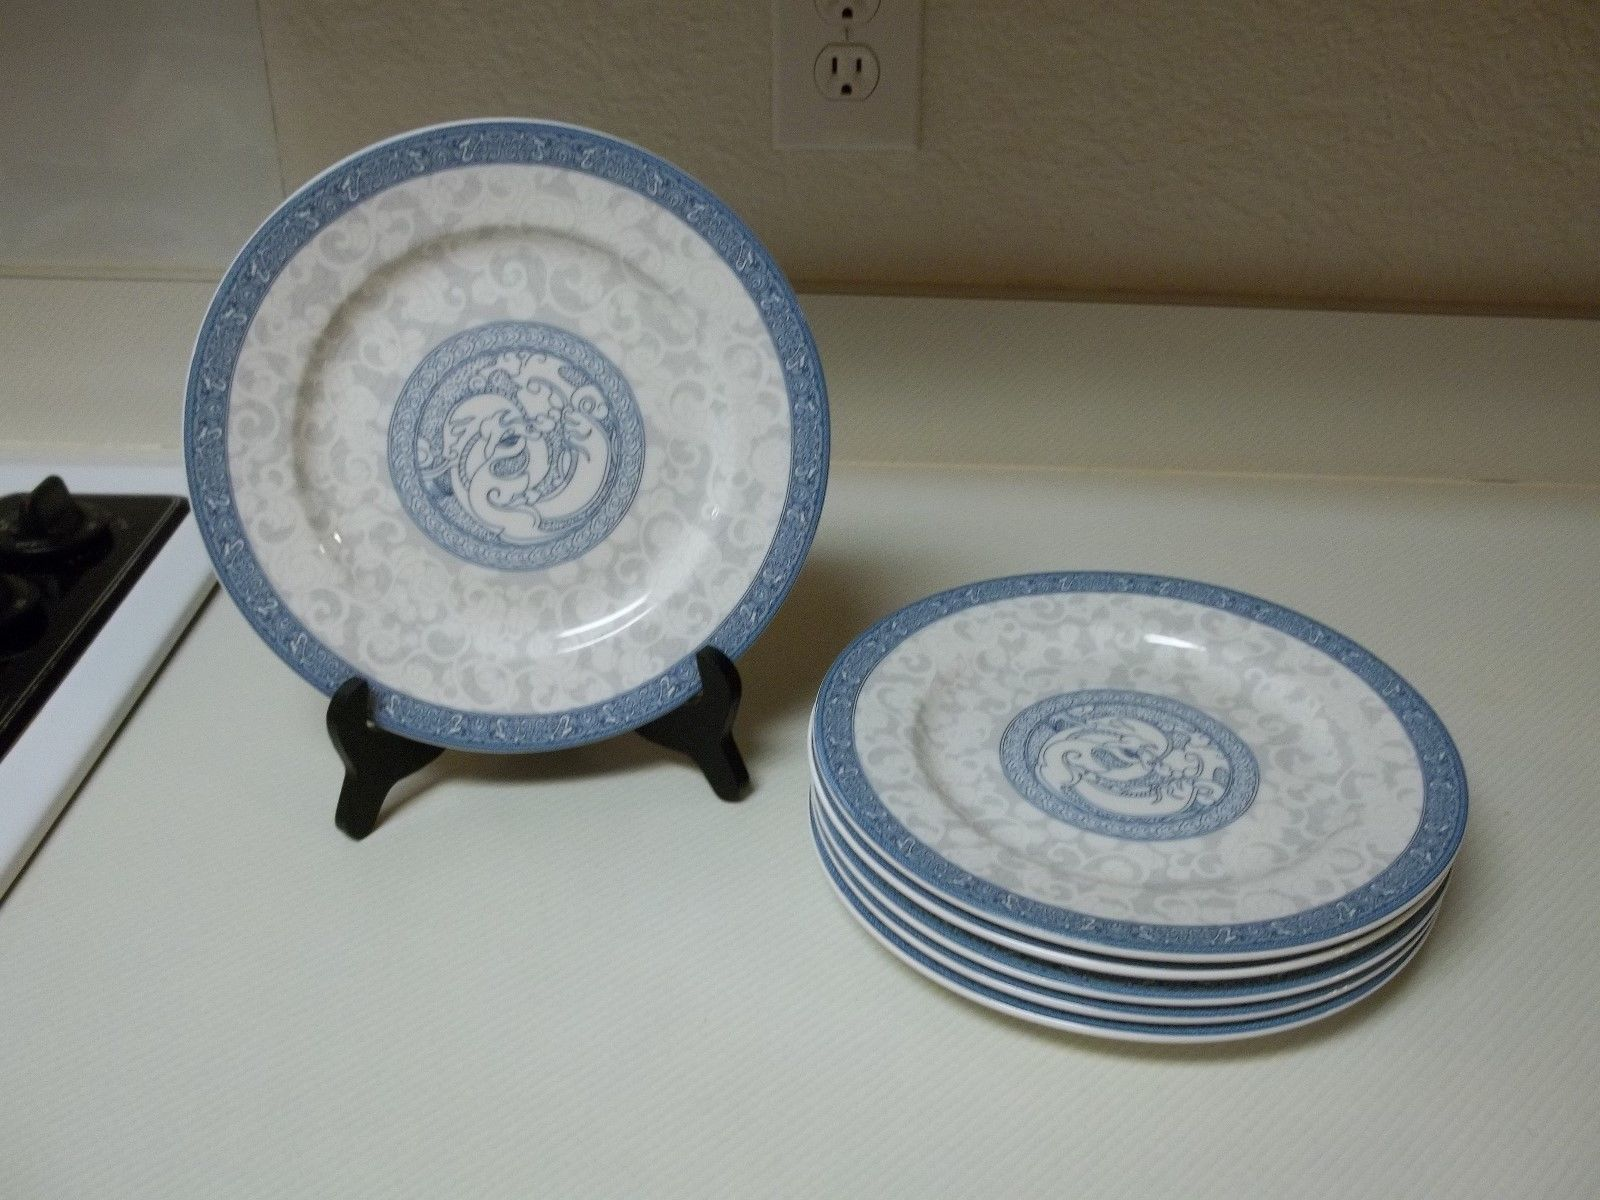 S l1600 & Cames Durable China Blue White Gray Set of 6 and similar items